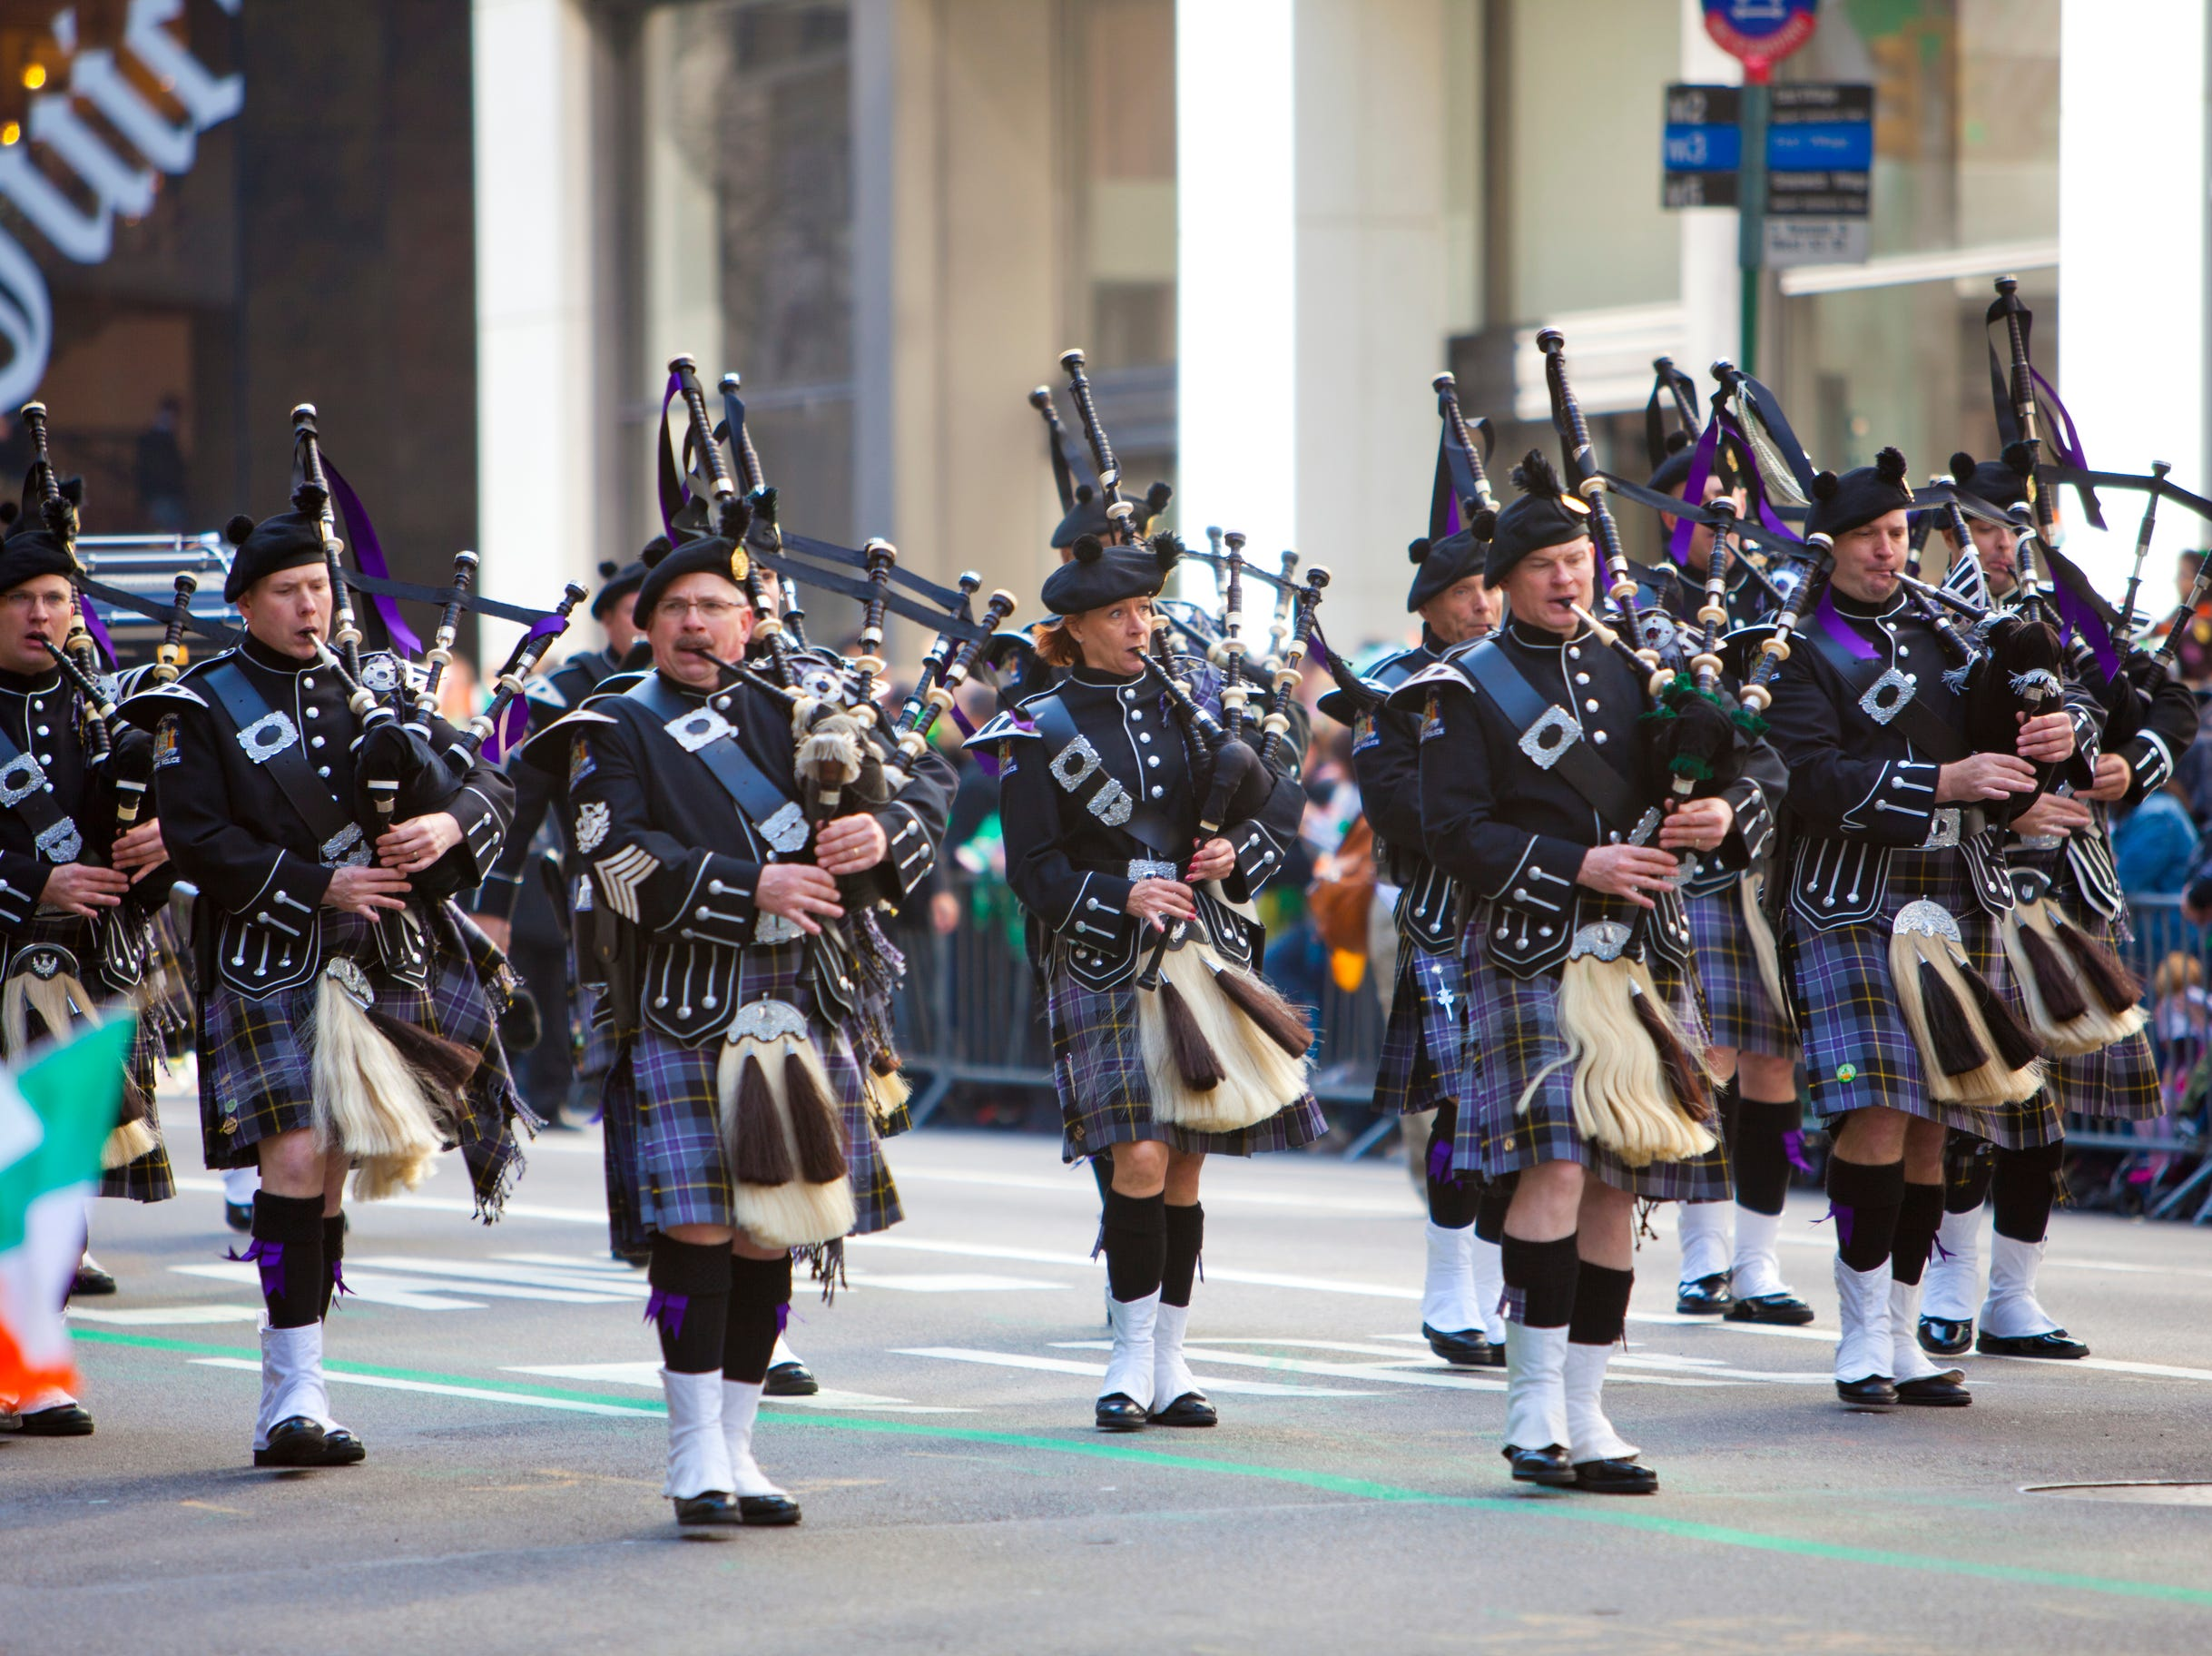 NEW YORK, NY, USA MAR 17: Bagpipers at the St. Patrick's Day Parade on March 17, 2012 in New York City, United States. - New York Stuart Monk St Patricks Day Parade